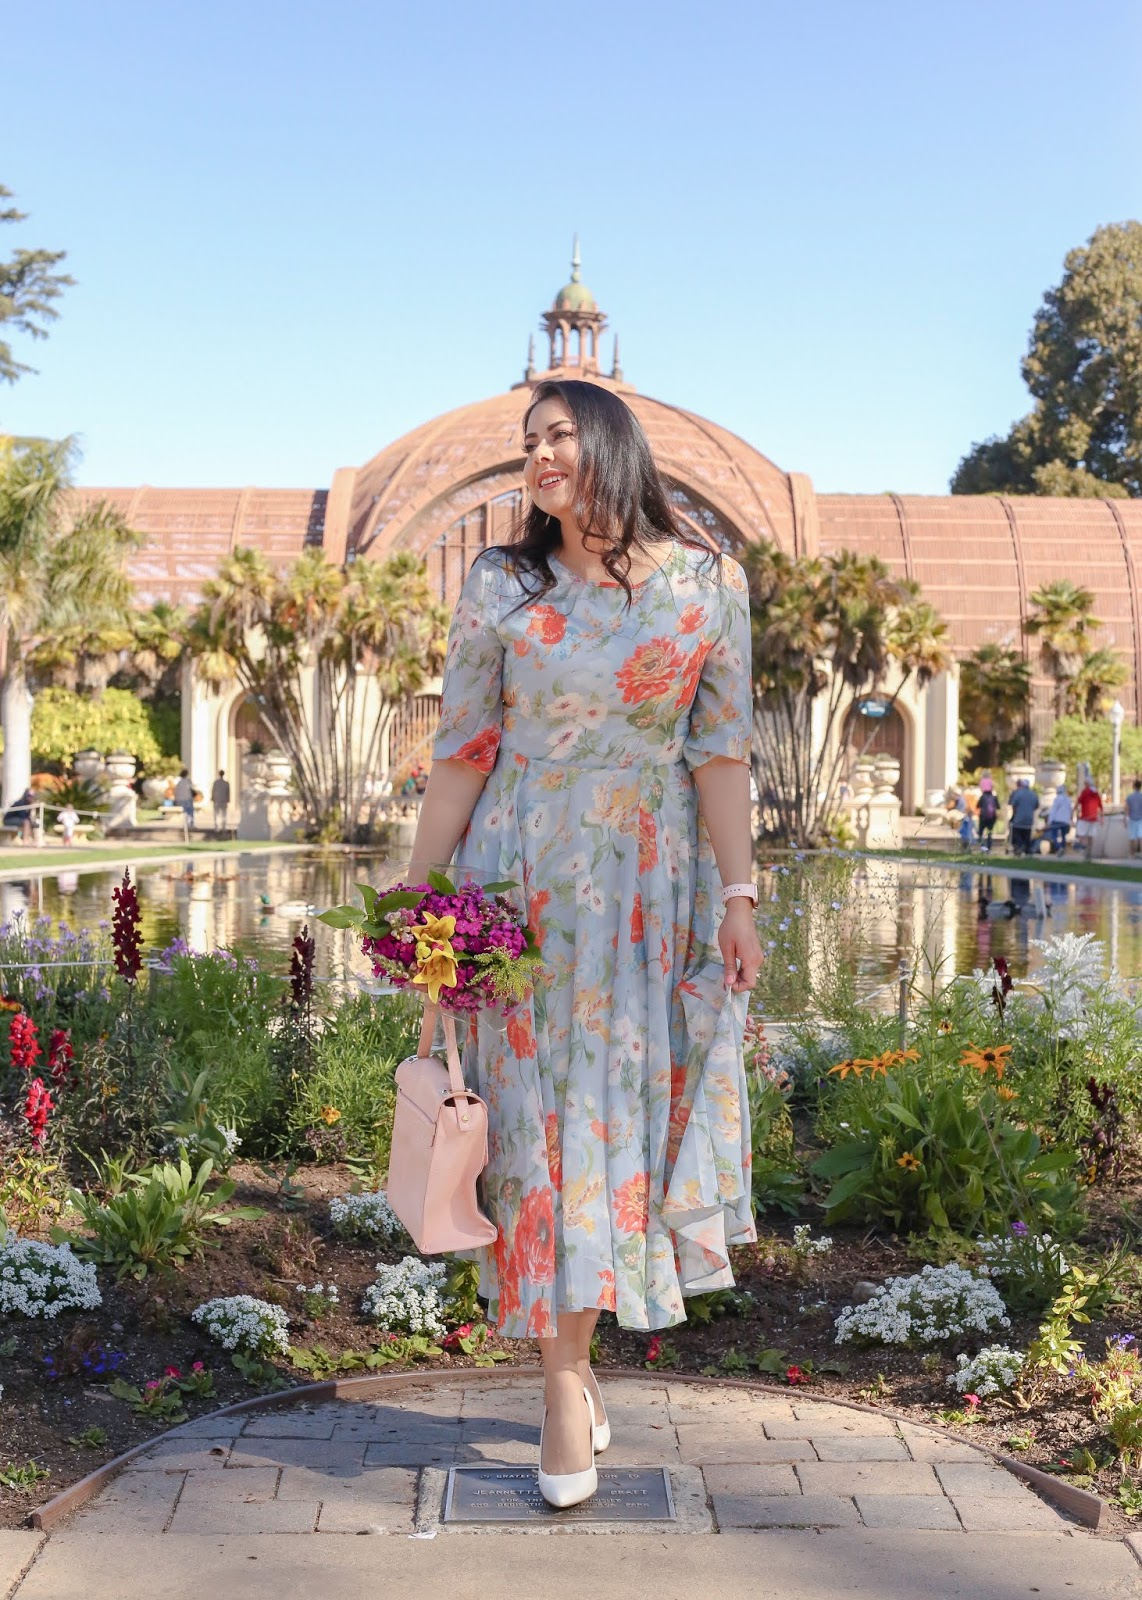 Fashion in Balboa Park, best places to take pictures in San Diego